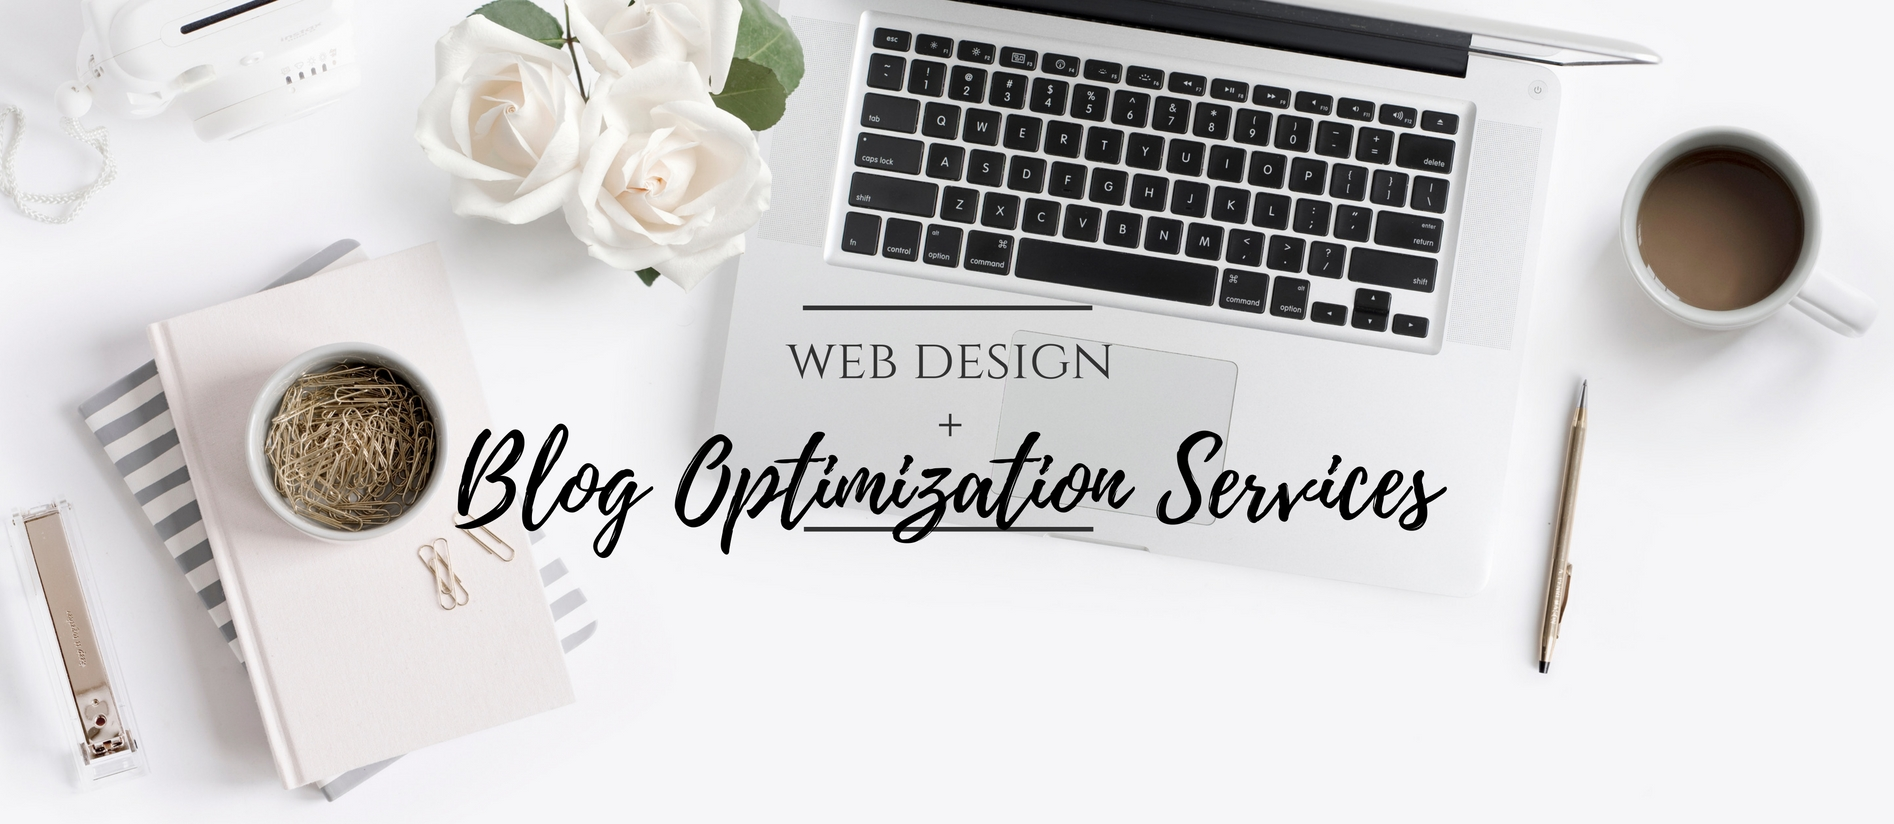 Snazzy Design Services